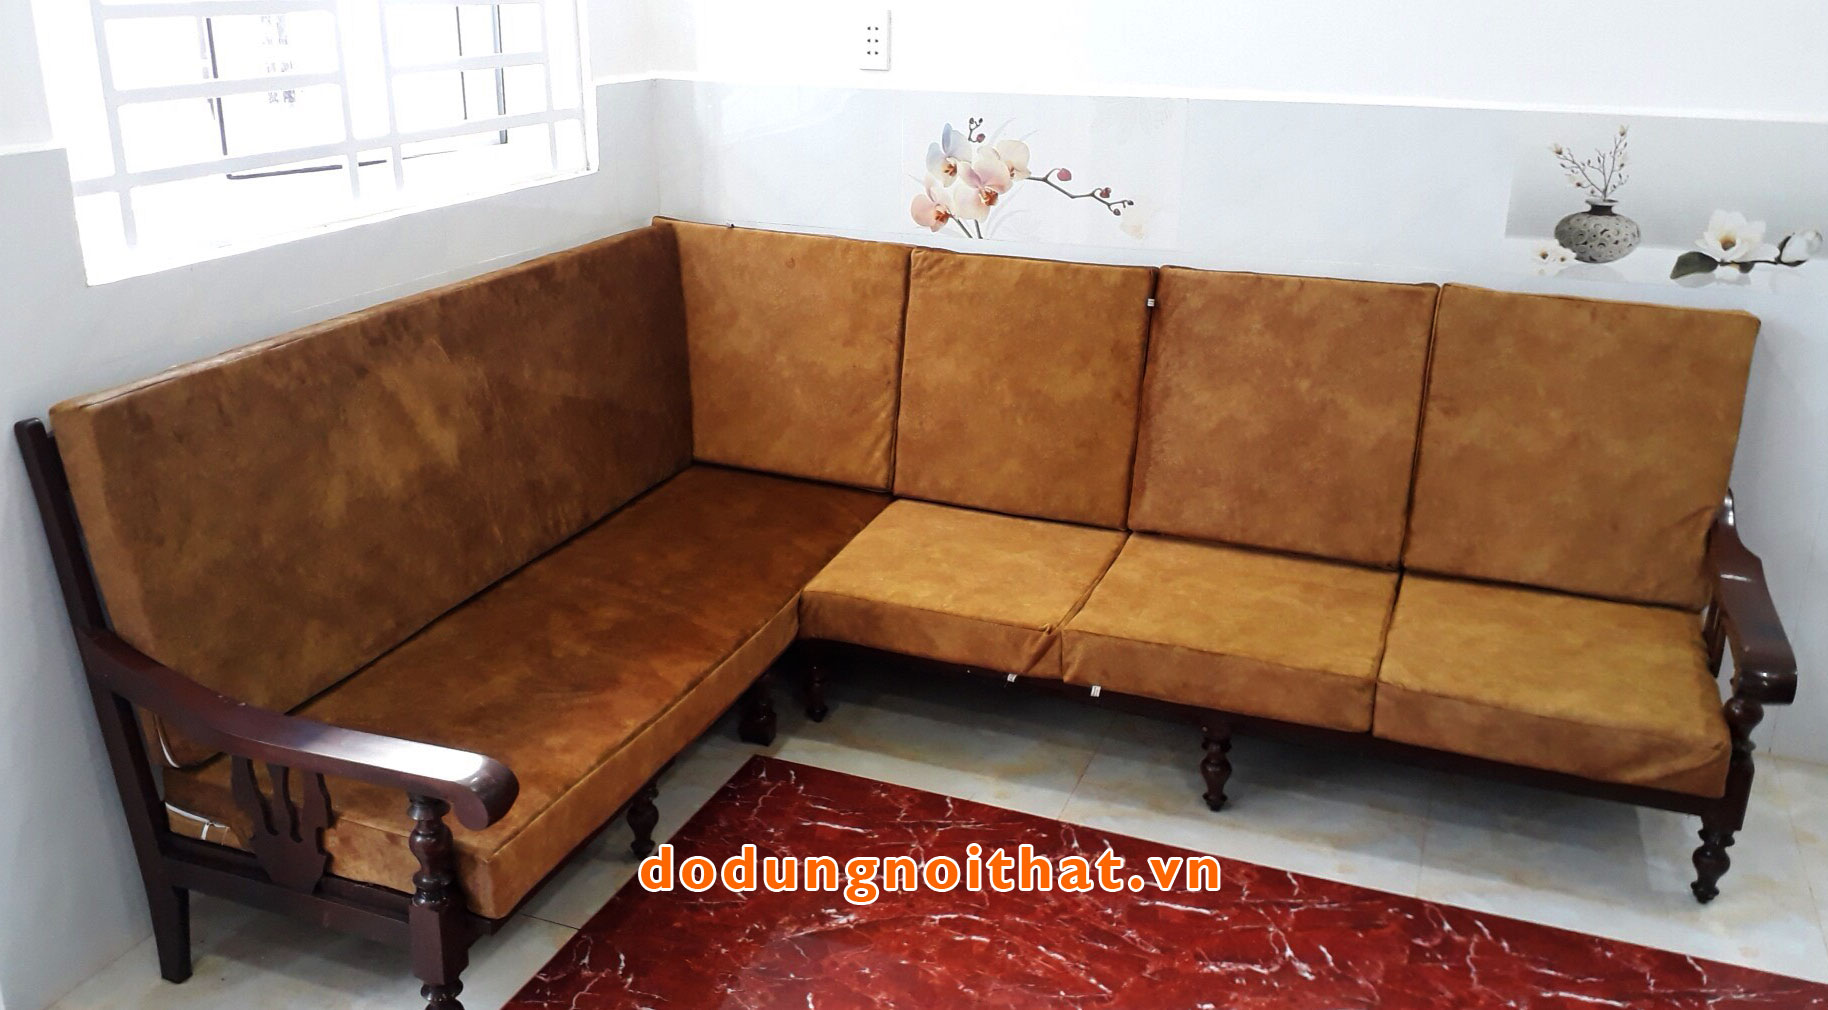 khach-hang-may-nem-ghe-sofa-go-gia-re-dodungnoithat-4